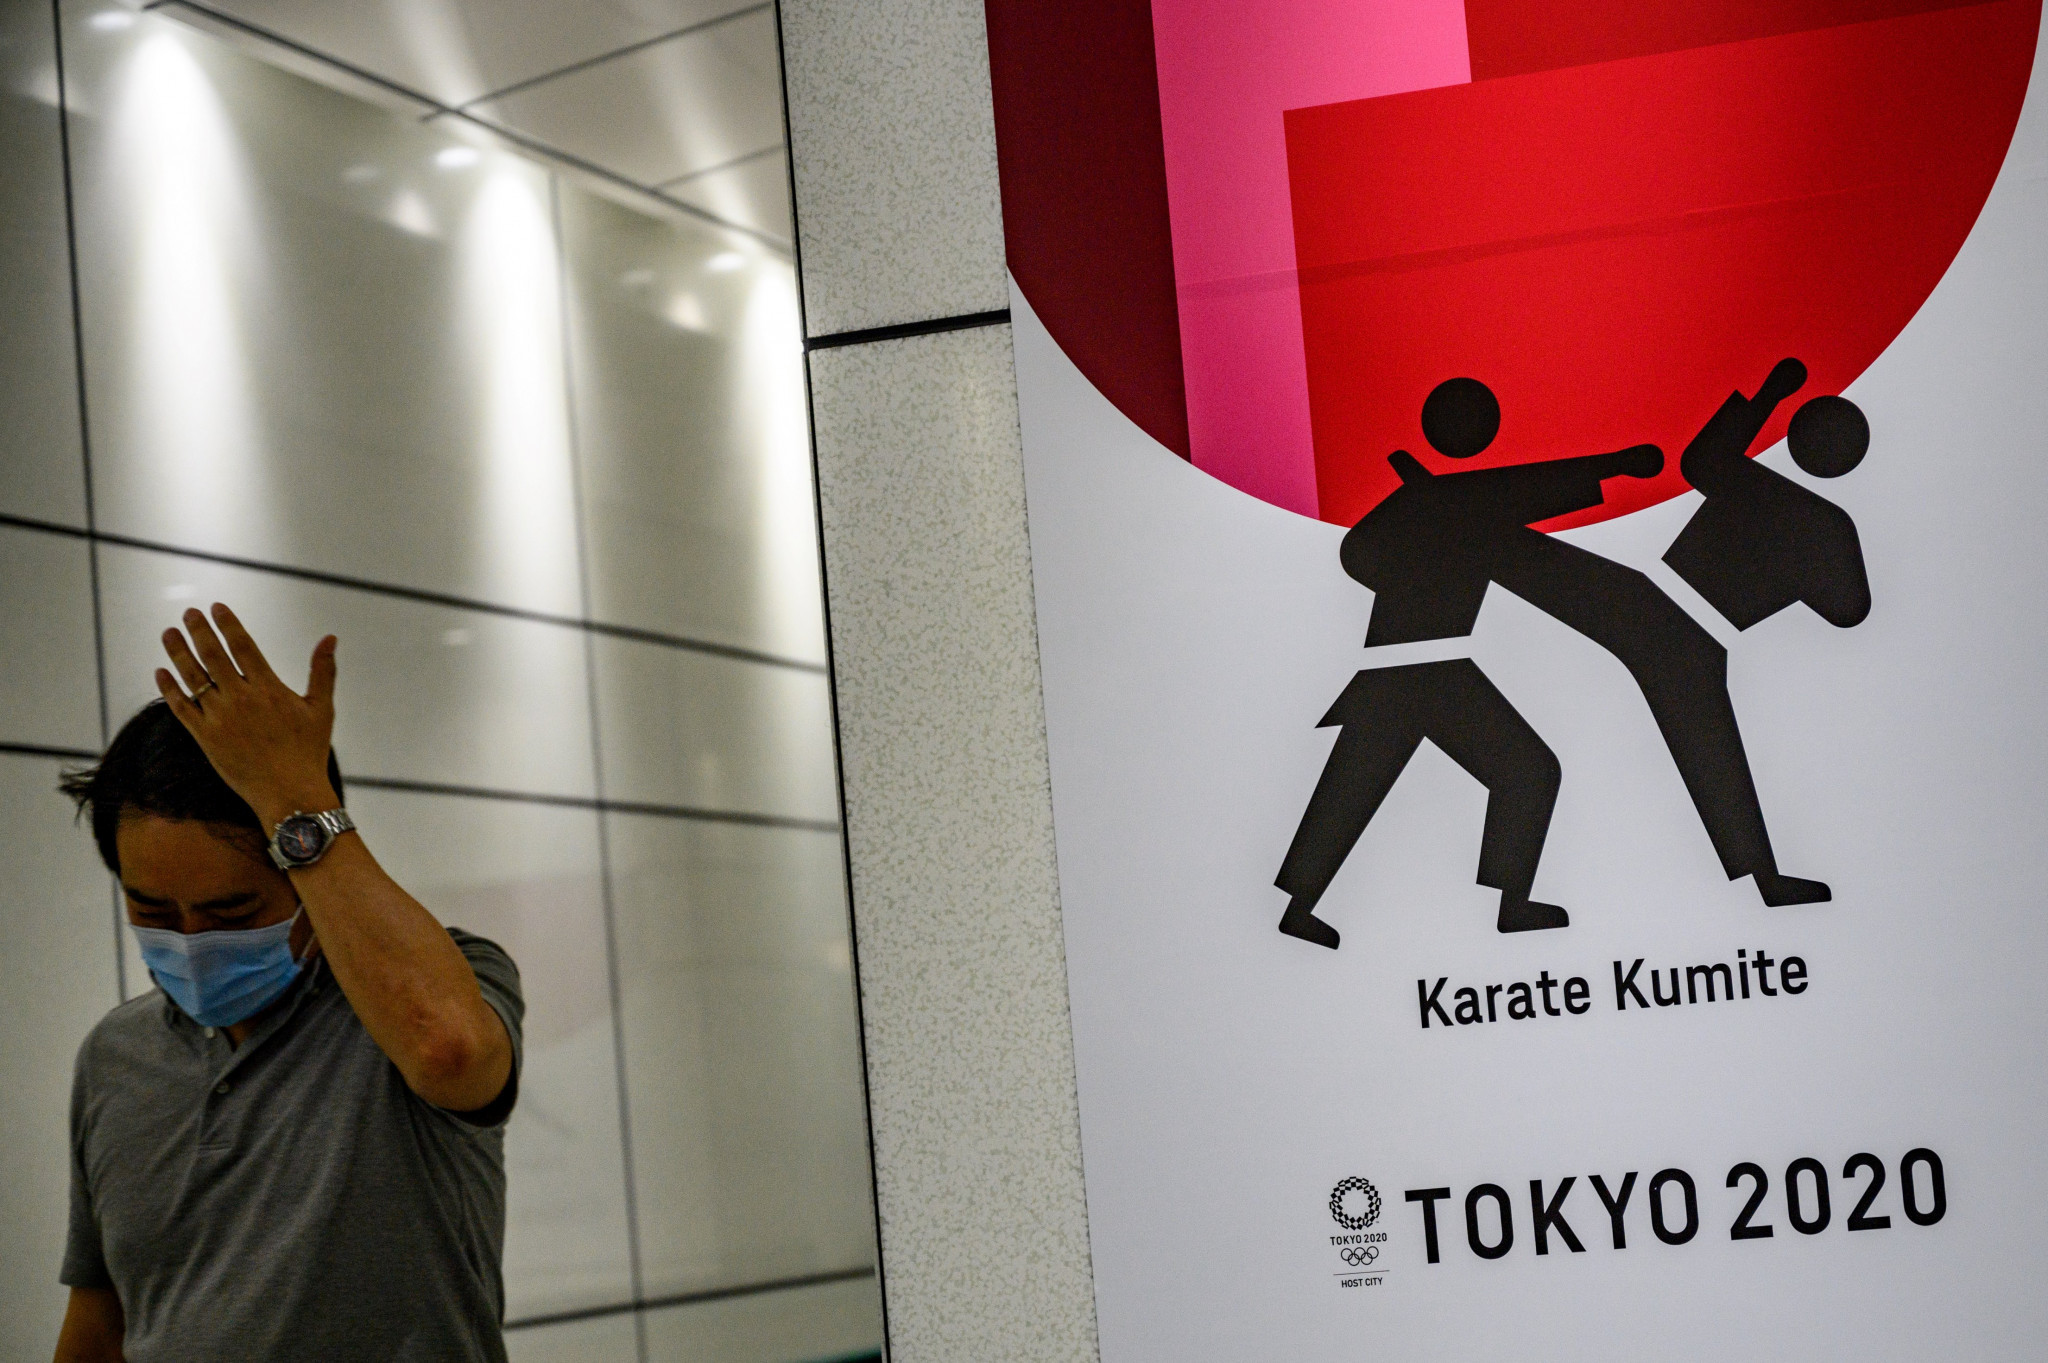 Karate will make its Olympic debut at the famous Nippon Budokan venue ©Getty Images